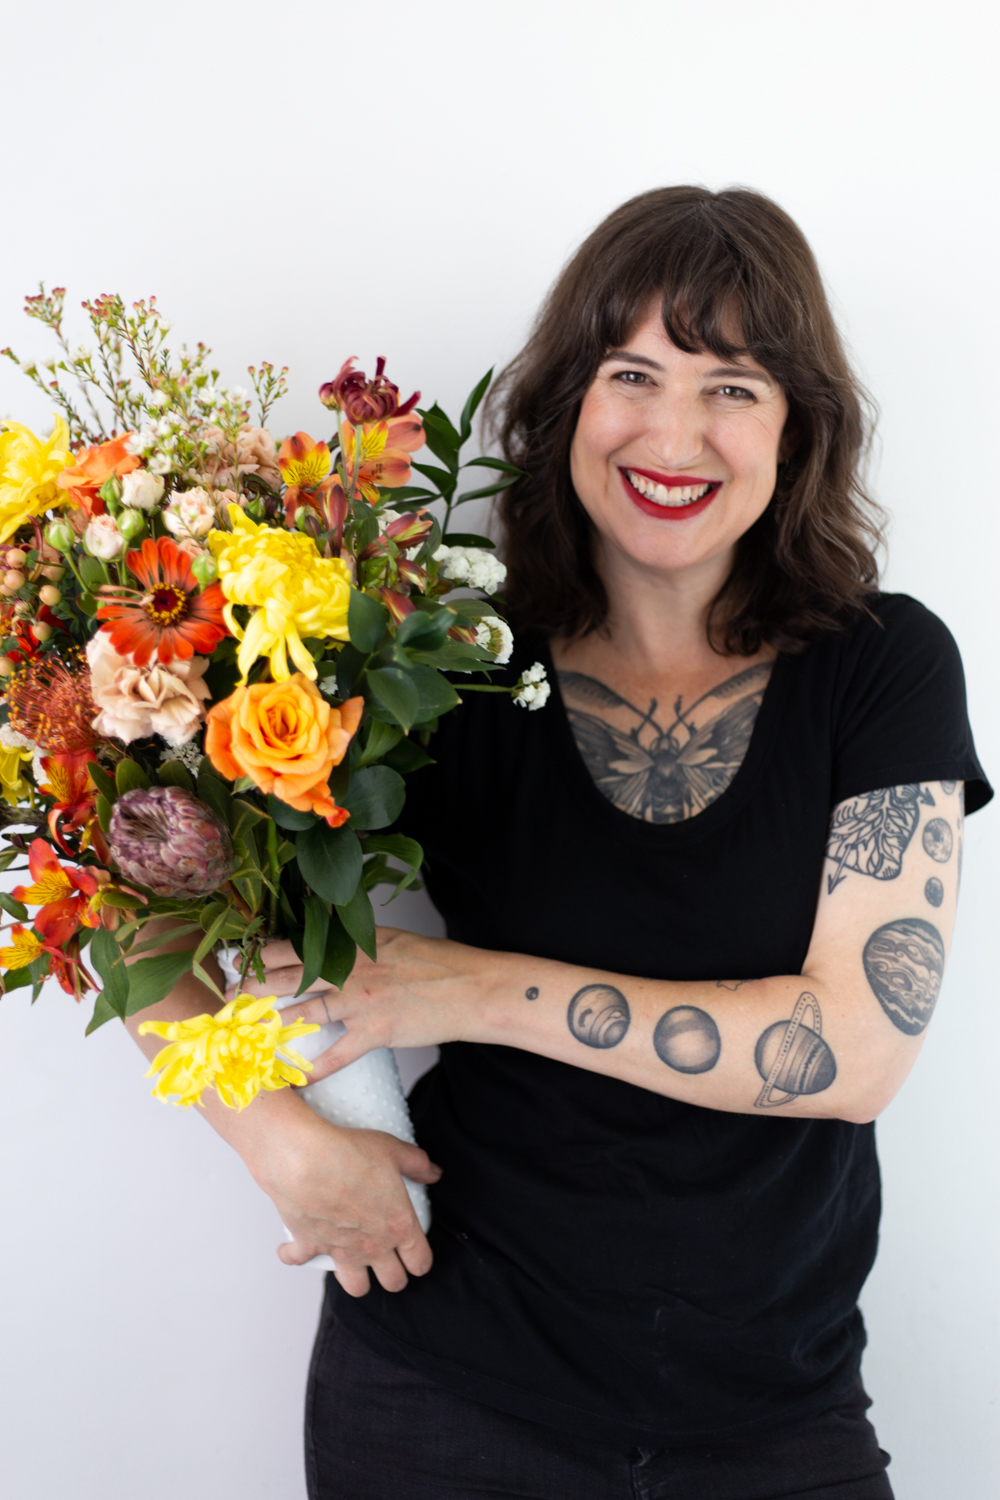 Sally Sparks - Designing with flowers has truly been a lifelong passion that continues to grow.For years, I've worked with some of San Francisco's leading floral designers. All of this knowledge and passion led me to open my own business. I now happily own and operate Sally Sparks Flowers & Design, a retail space and design studio in San Francisco's Mission District. Community is key and we are thrilled to be a part of ActivSpace, a building full of diverse small businesses and creatives. I love when neighbors stop in to pick up a bouquet, when local office workers surprise their co-workers with birthday gifts, and when someone trusts us to design and decorate their special event with gorgeous botanicals.My goal is to bring carefully chosen colors, scents, textures, beauty, and love to create stunning memories here in the San Francisco Bay Area and around the world.